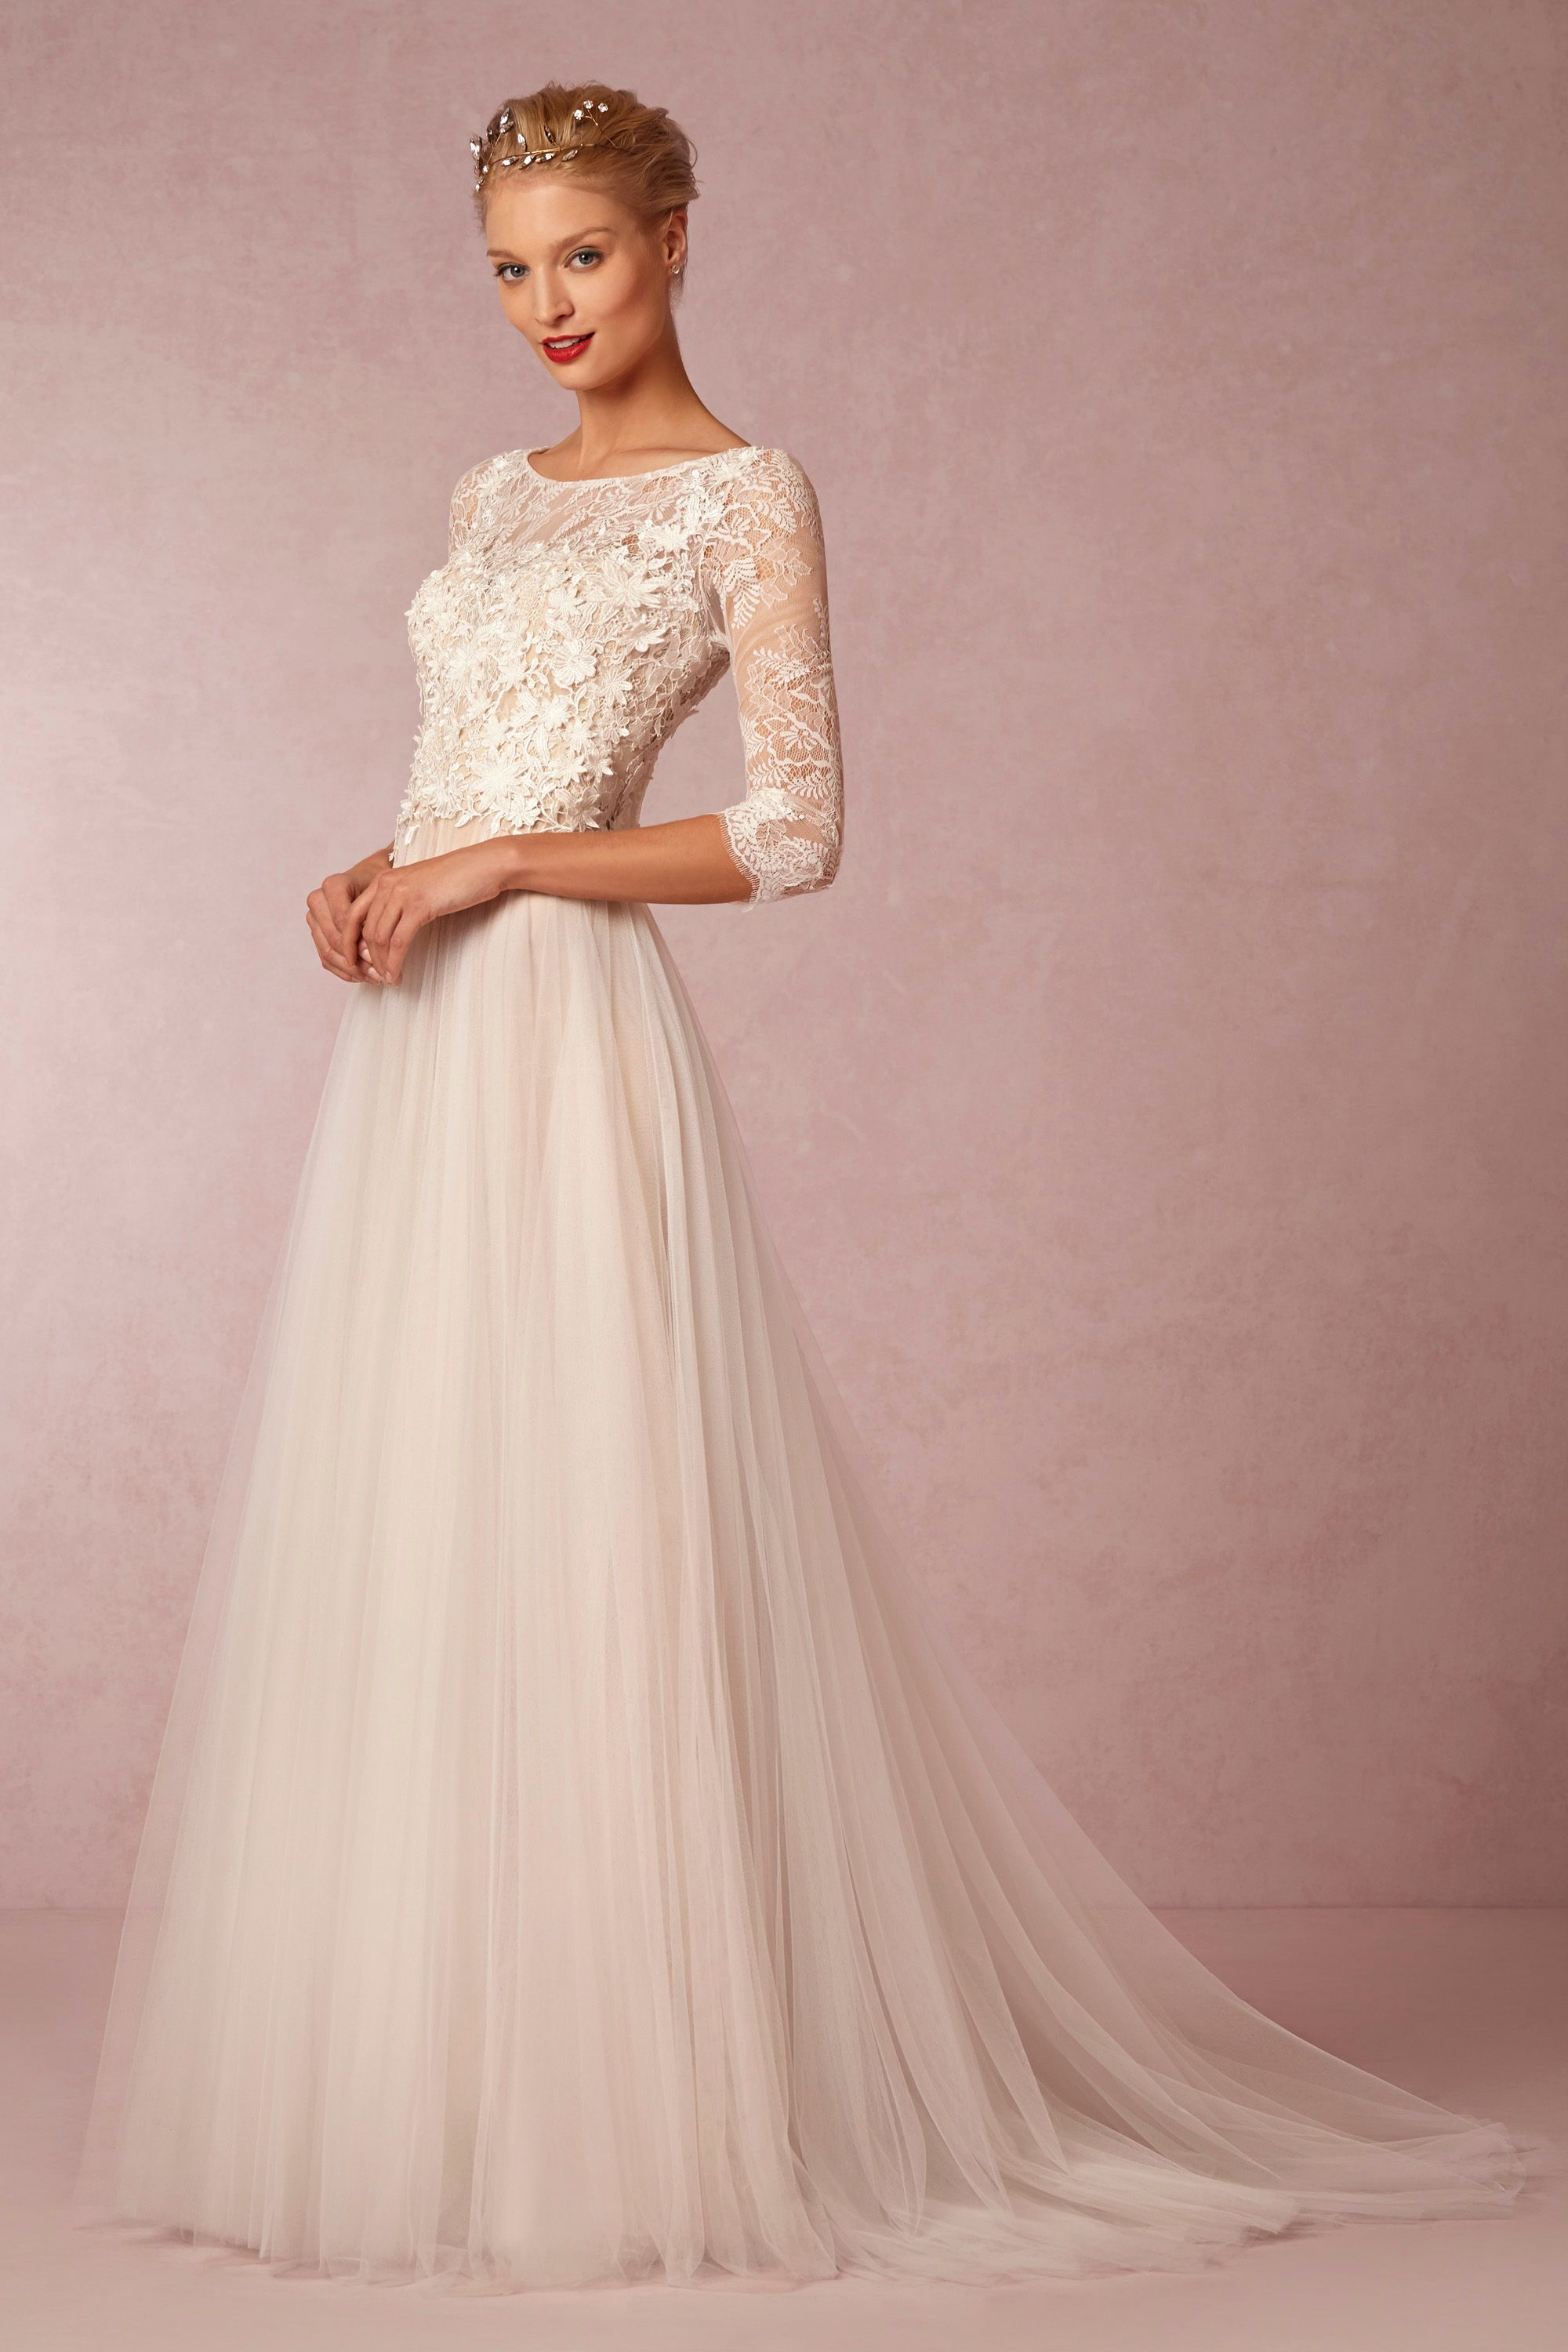 amelie gown wedding dresses for sale Watters Ivory Nude Amelie Gown BHLDN